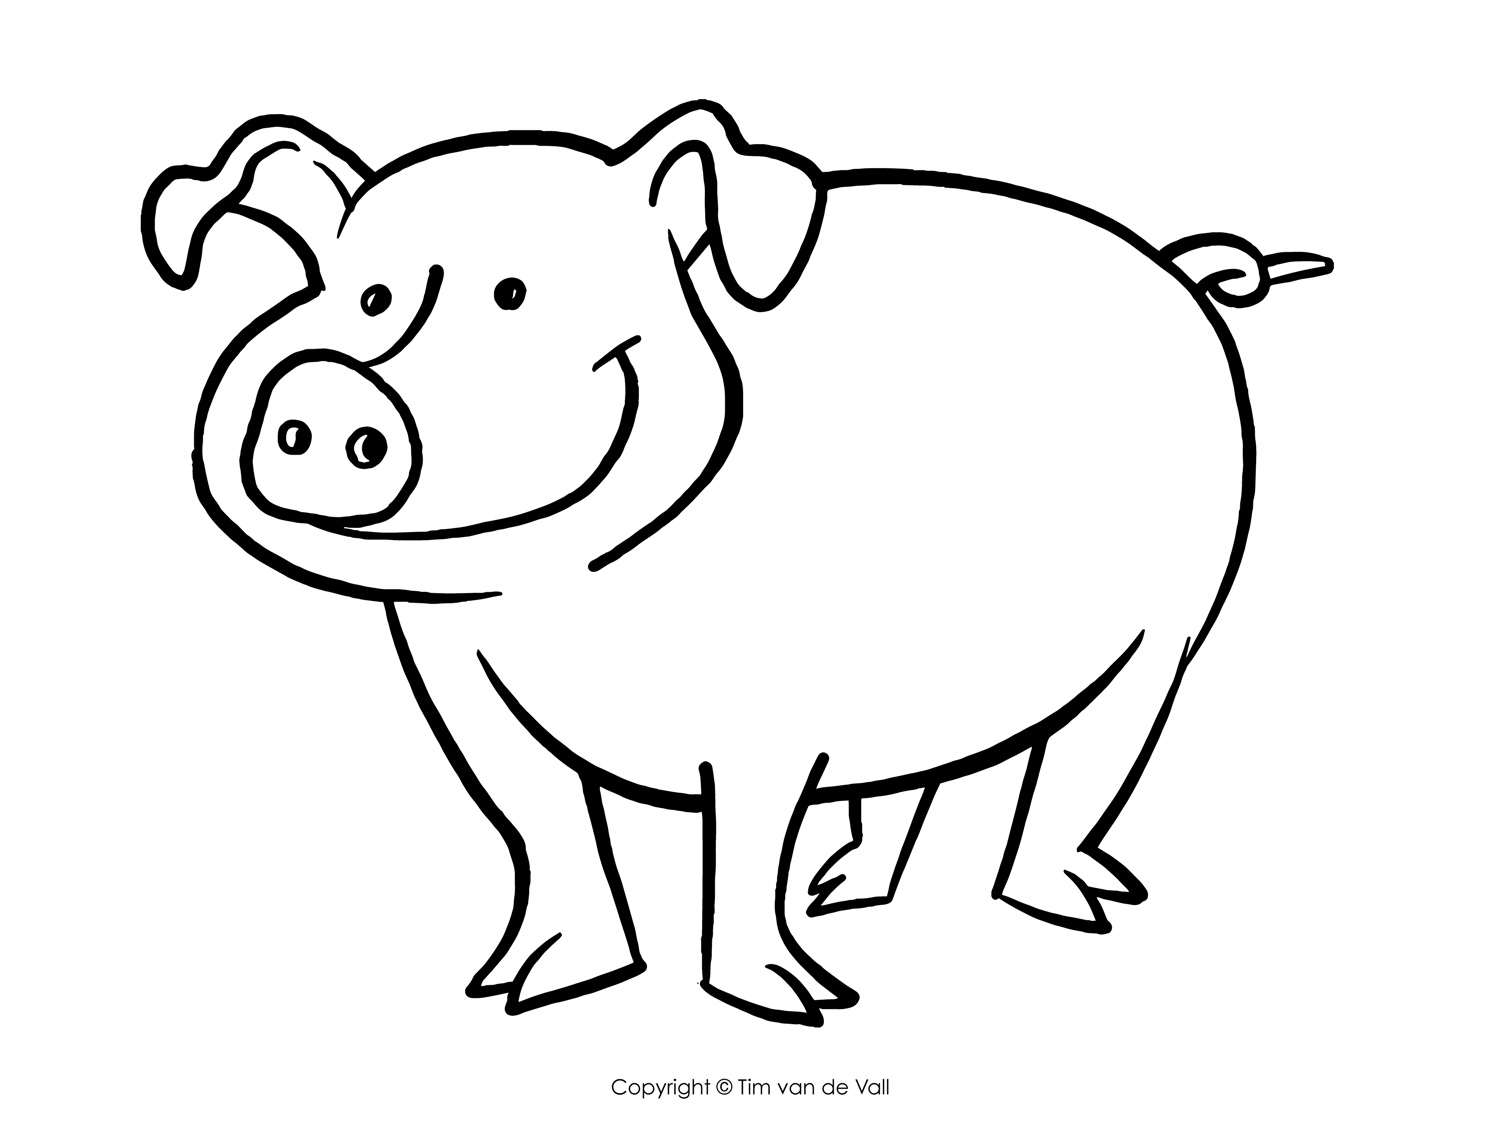 coloring page of pig pig coloring pages getcoloringpagescom page pig of coloring